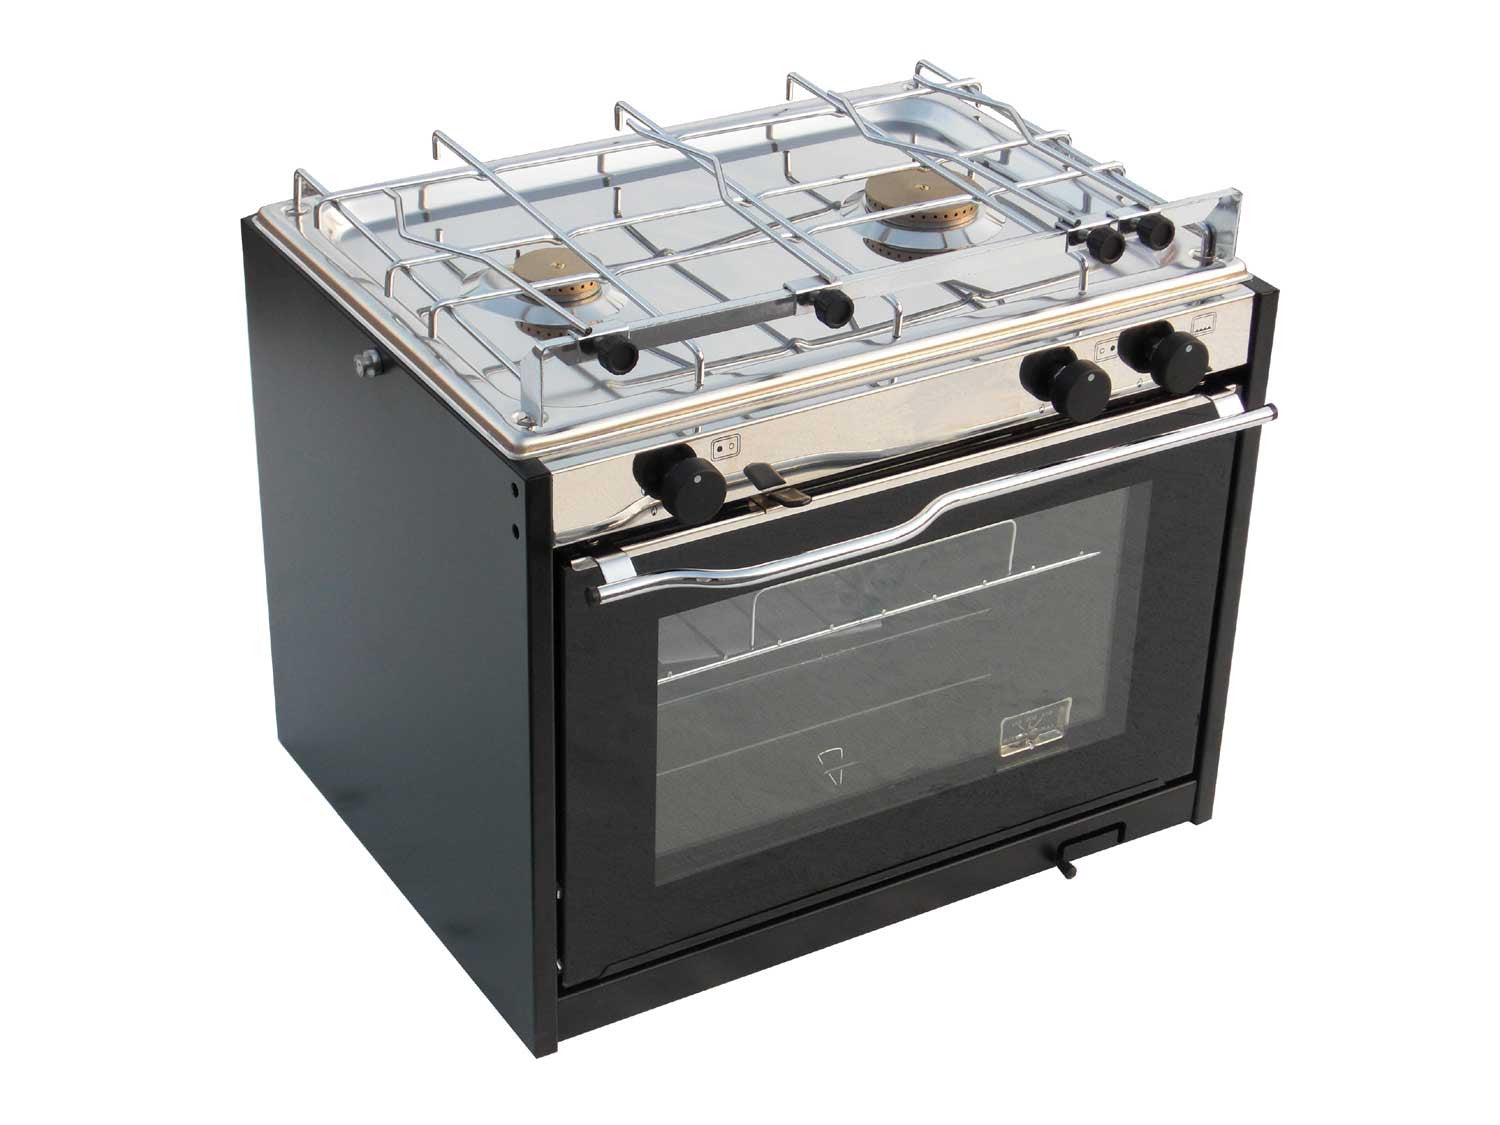 Cooker 2 burners with oven Black